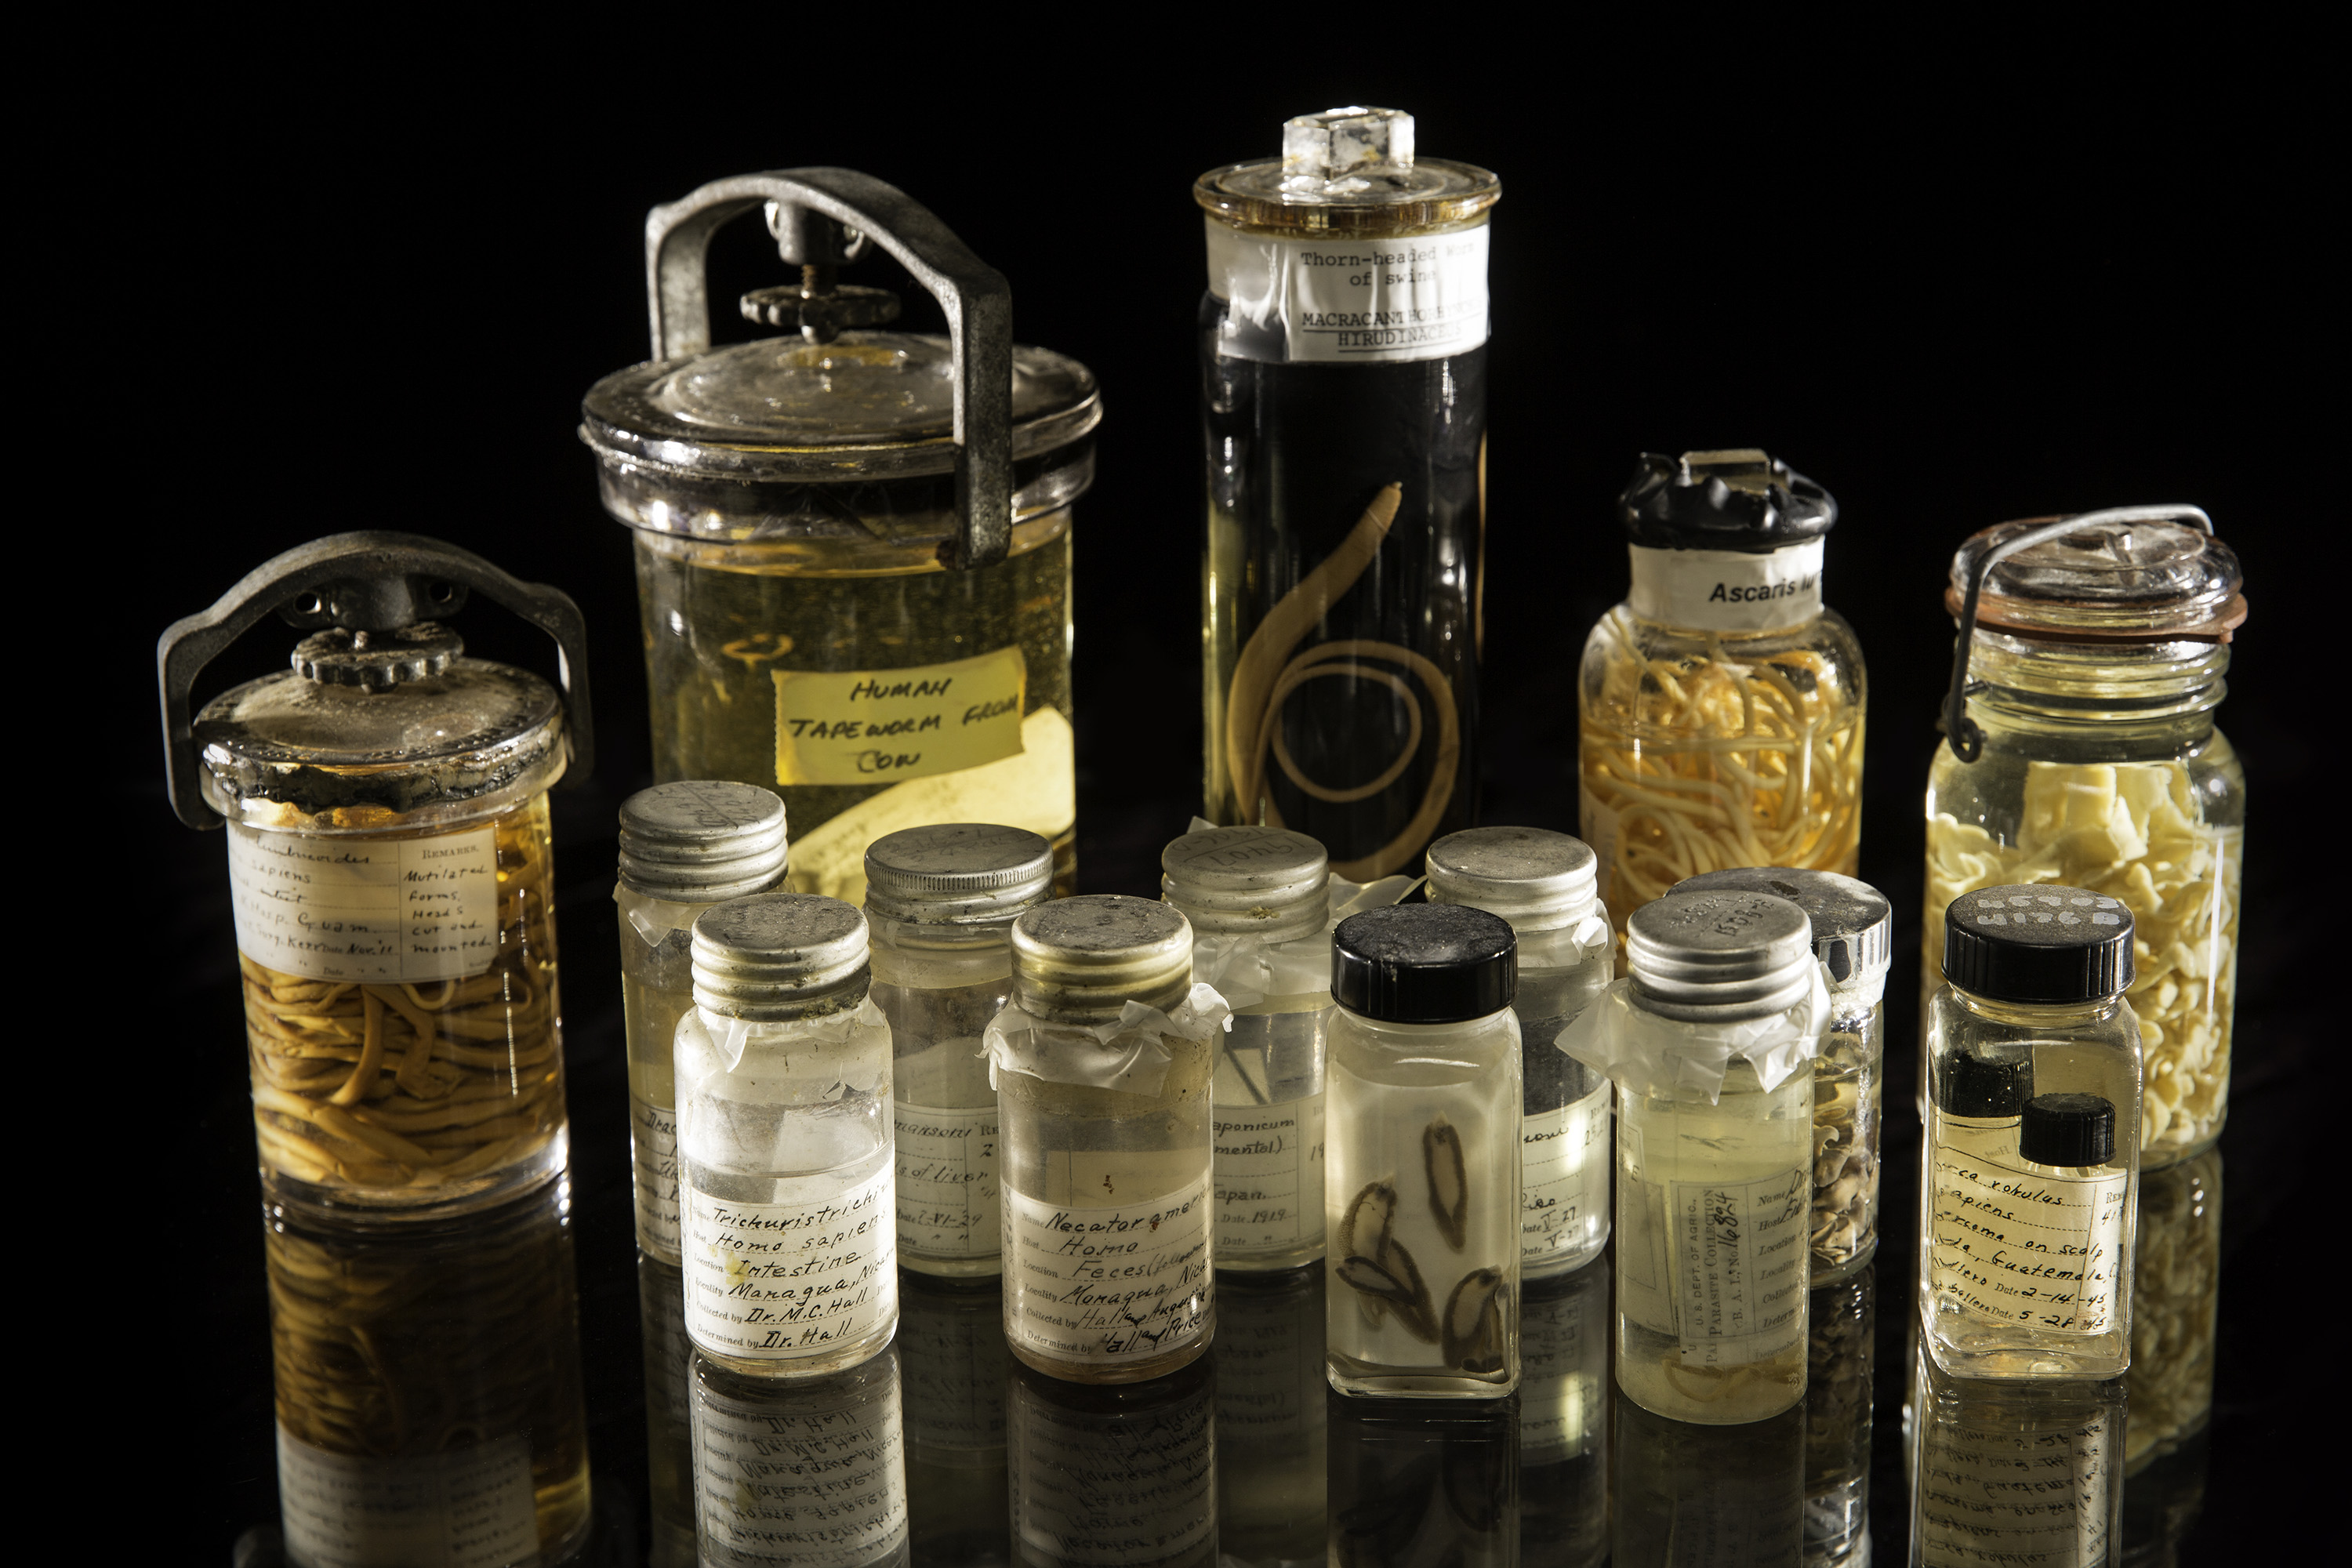 A sampling of specimens from the National Parasite Collection.